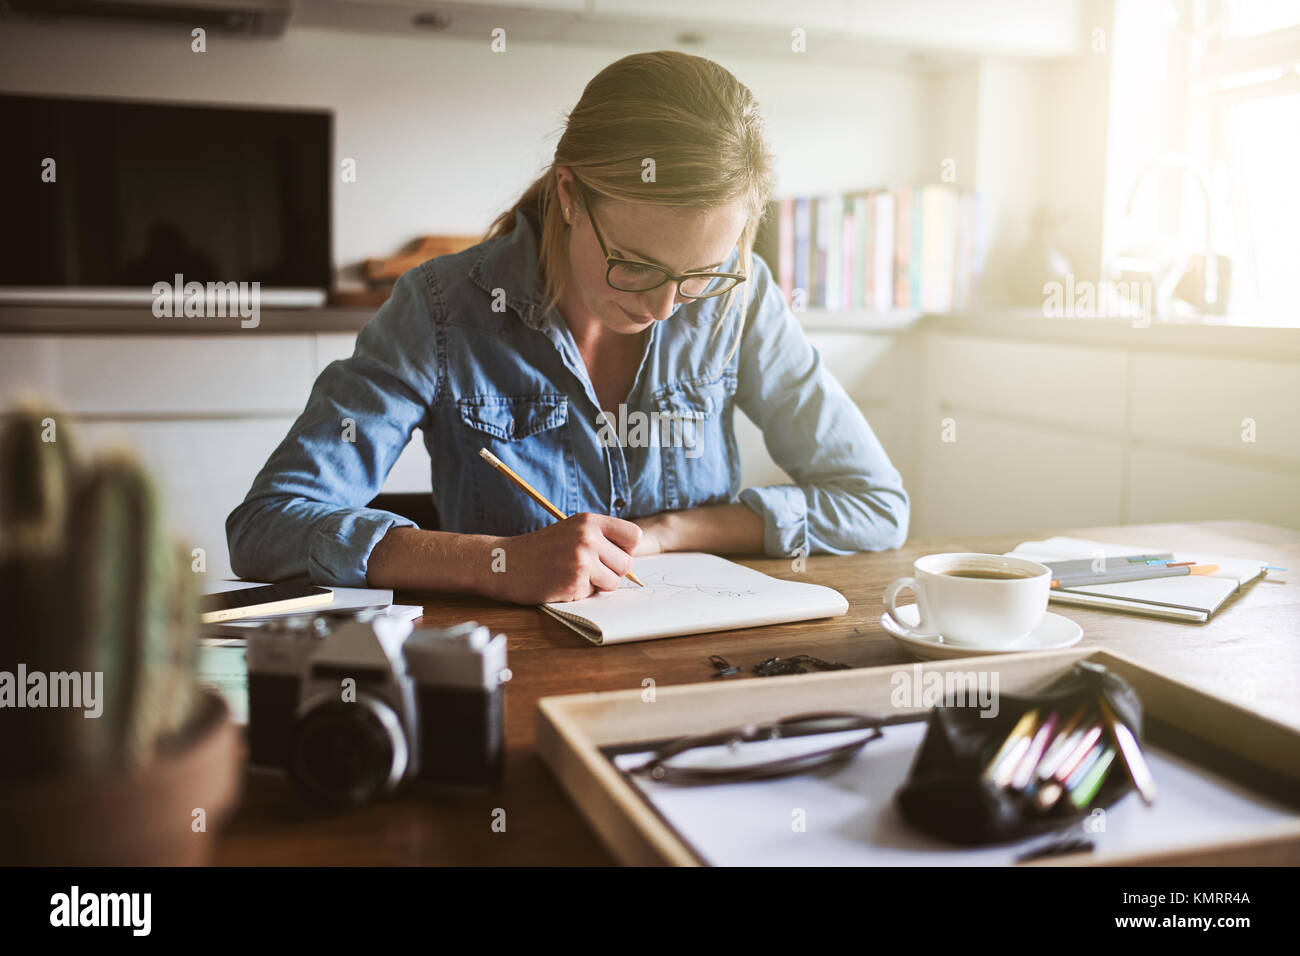 Young woman sitting alone at her kitchen table at home sketching designs with a pencil on a notepad - Stock Image